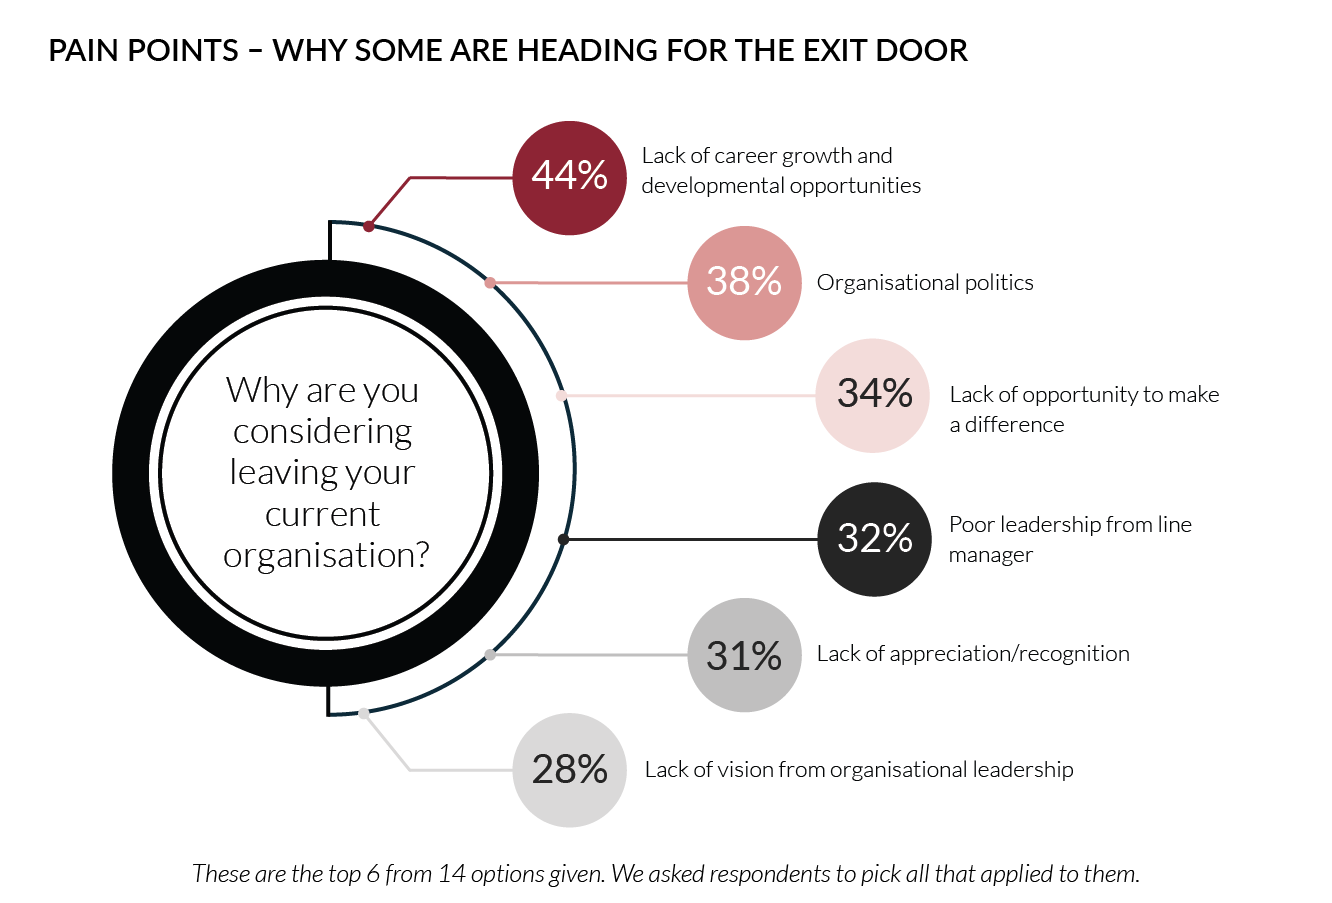 Pain points - Why some are heading for the exit door